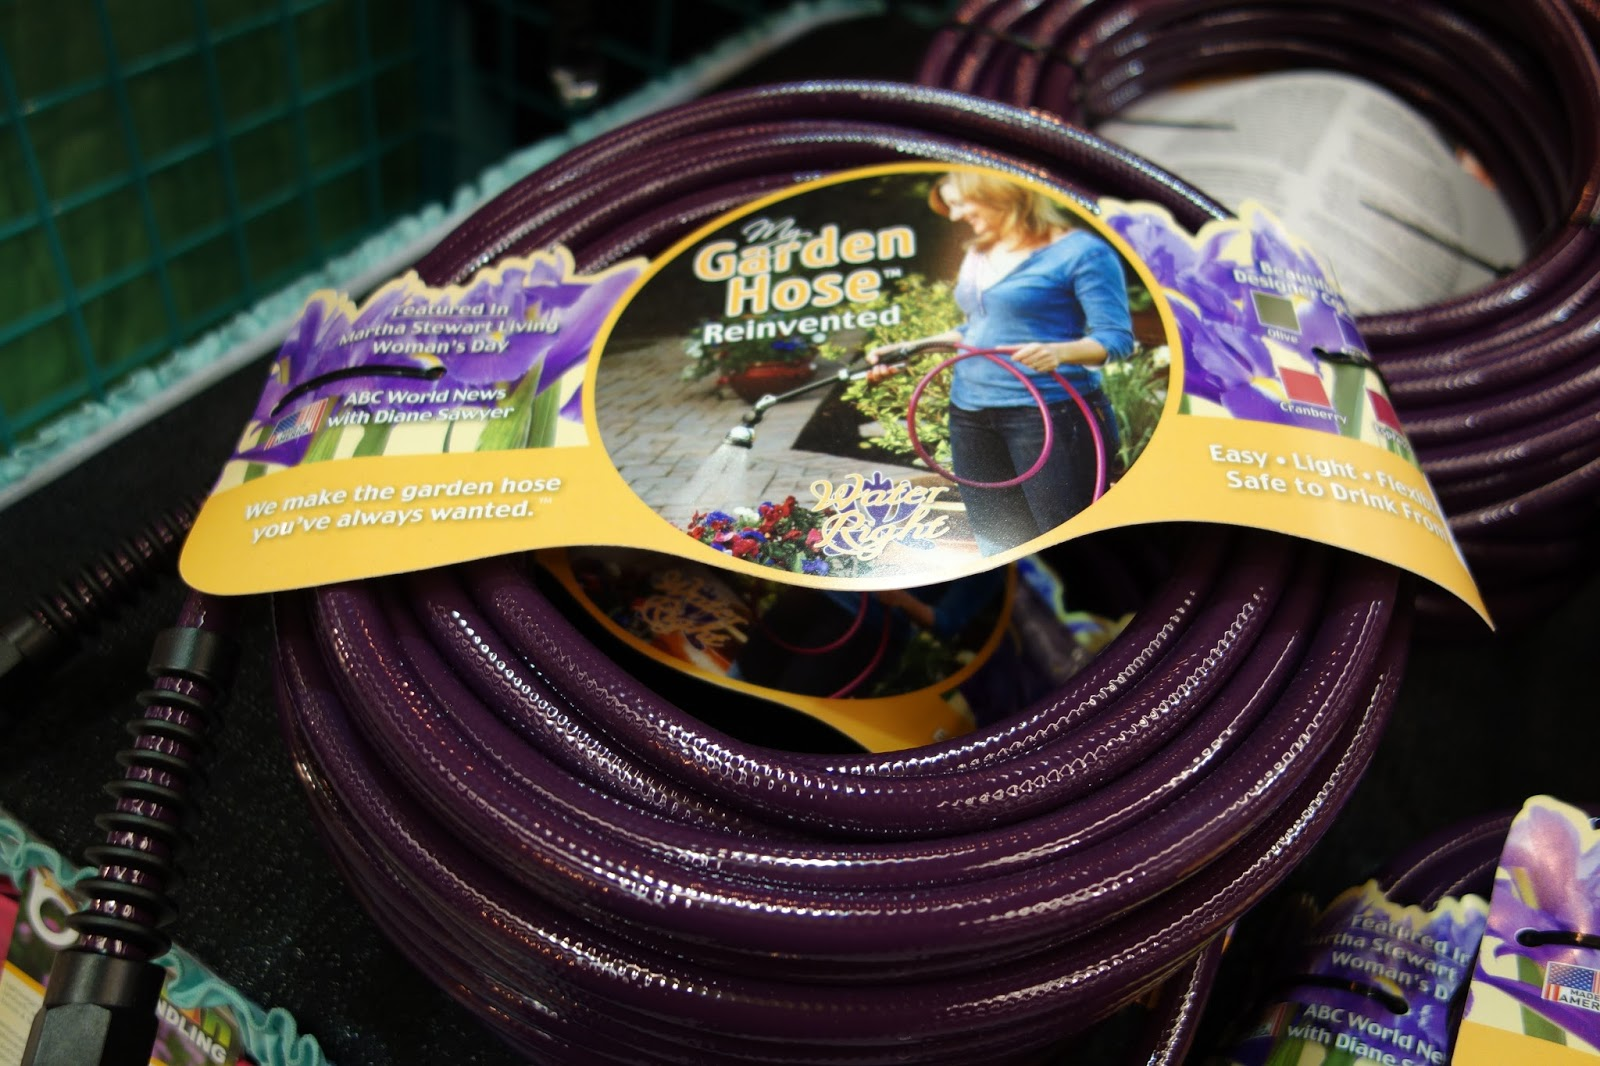 Ordinaire Iu0027m Pretty Sure It Was The Strong Marketing Booth, Where I Saw This  Beautiful Deep Purple Garden Hose By My Garden Hose Reinvented.